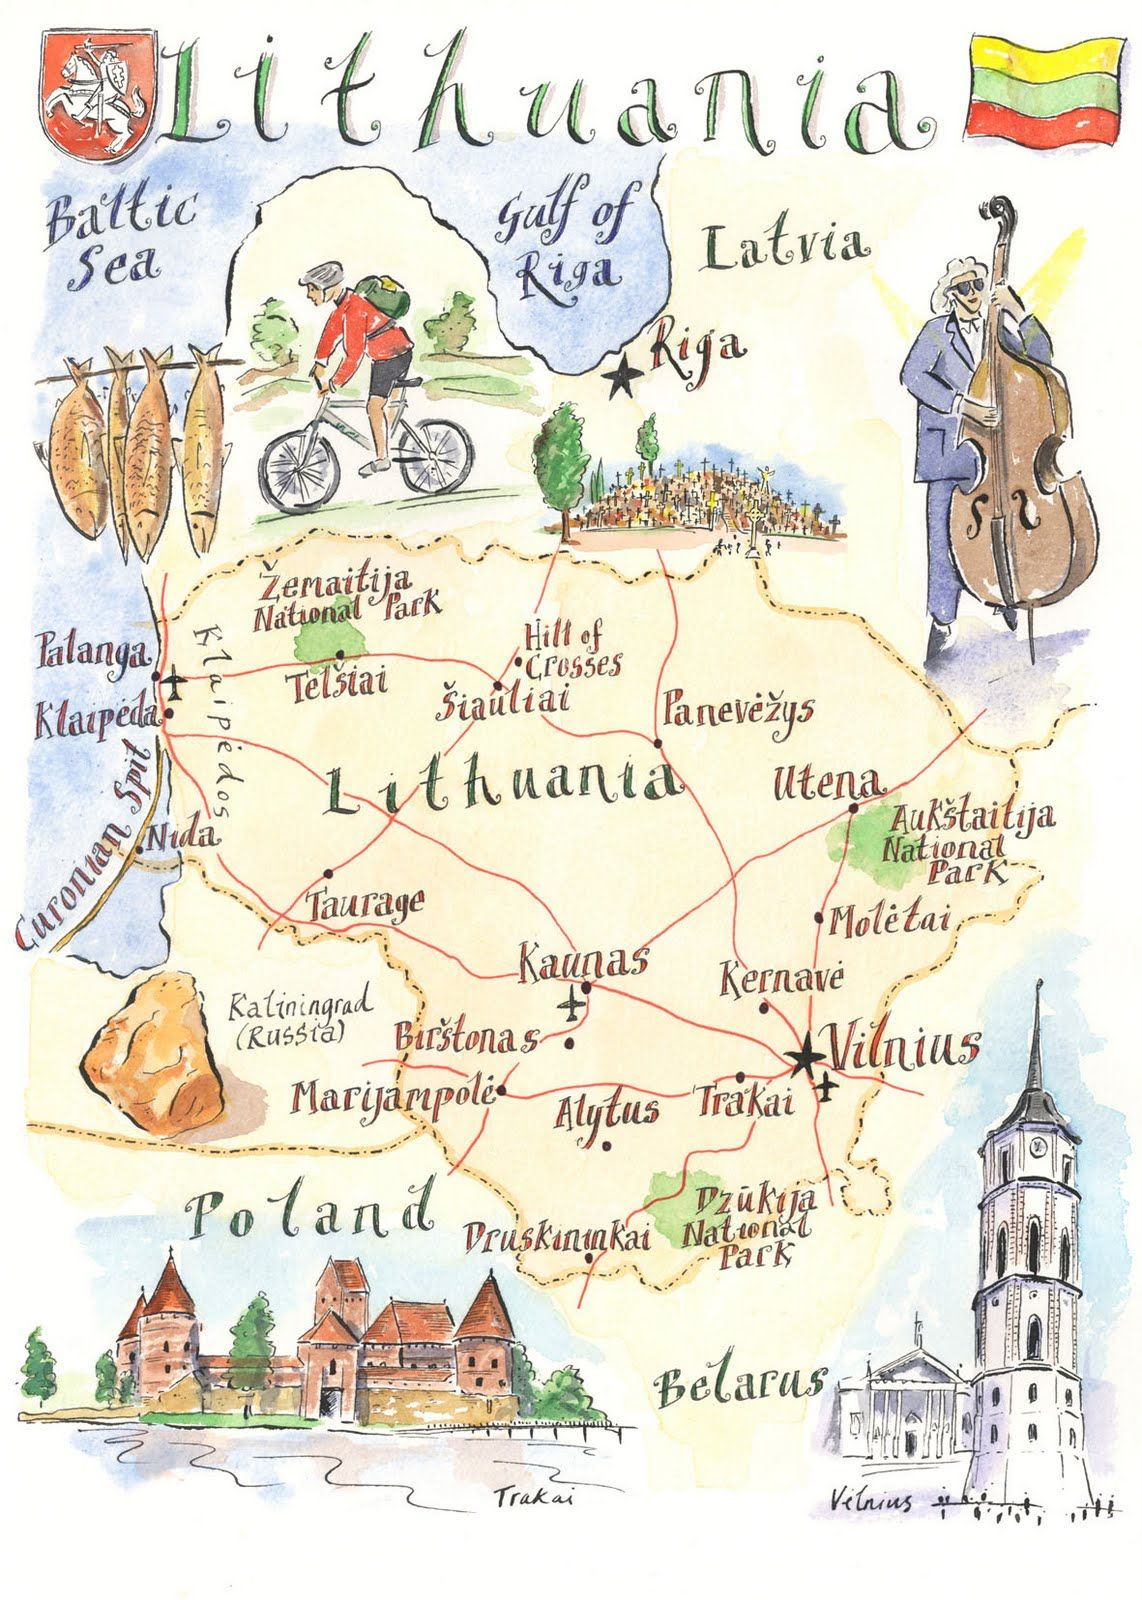 Lithuania Illustrated Map @Paige Hereford Mullins  I'm excited!